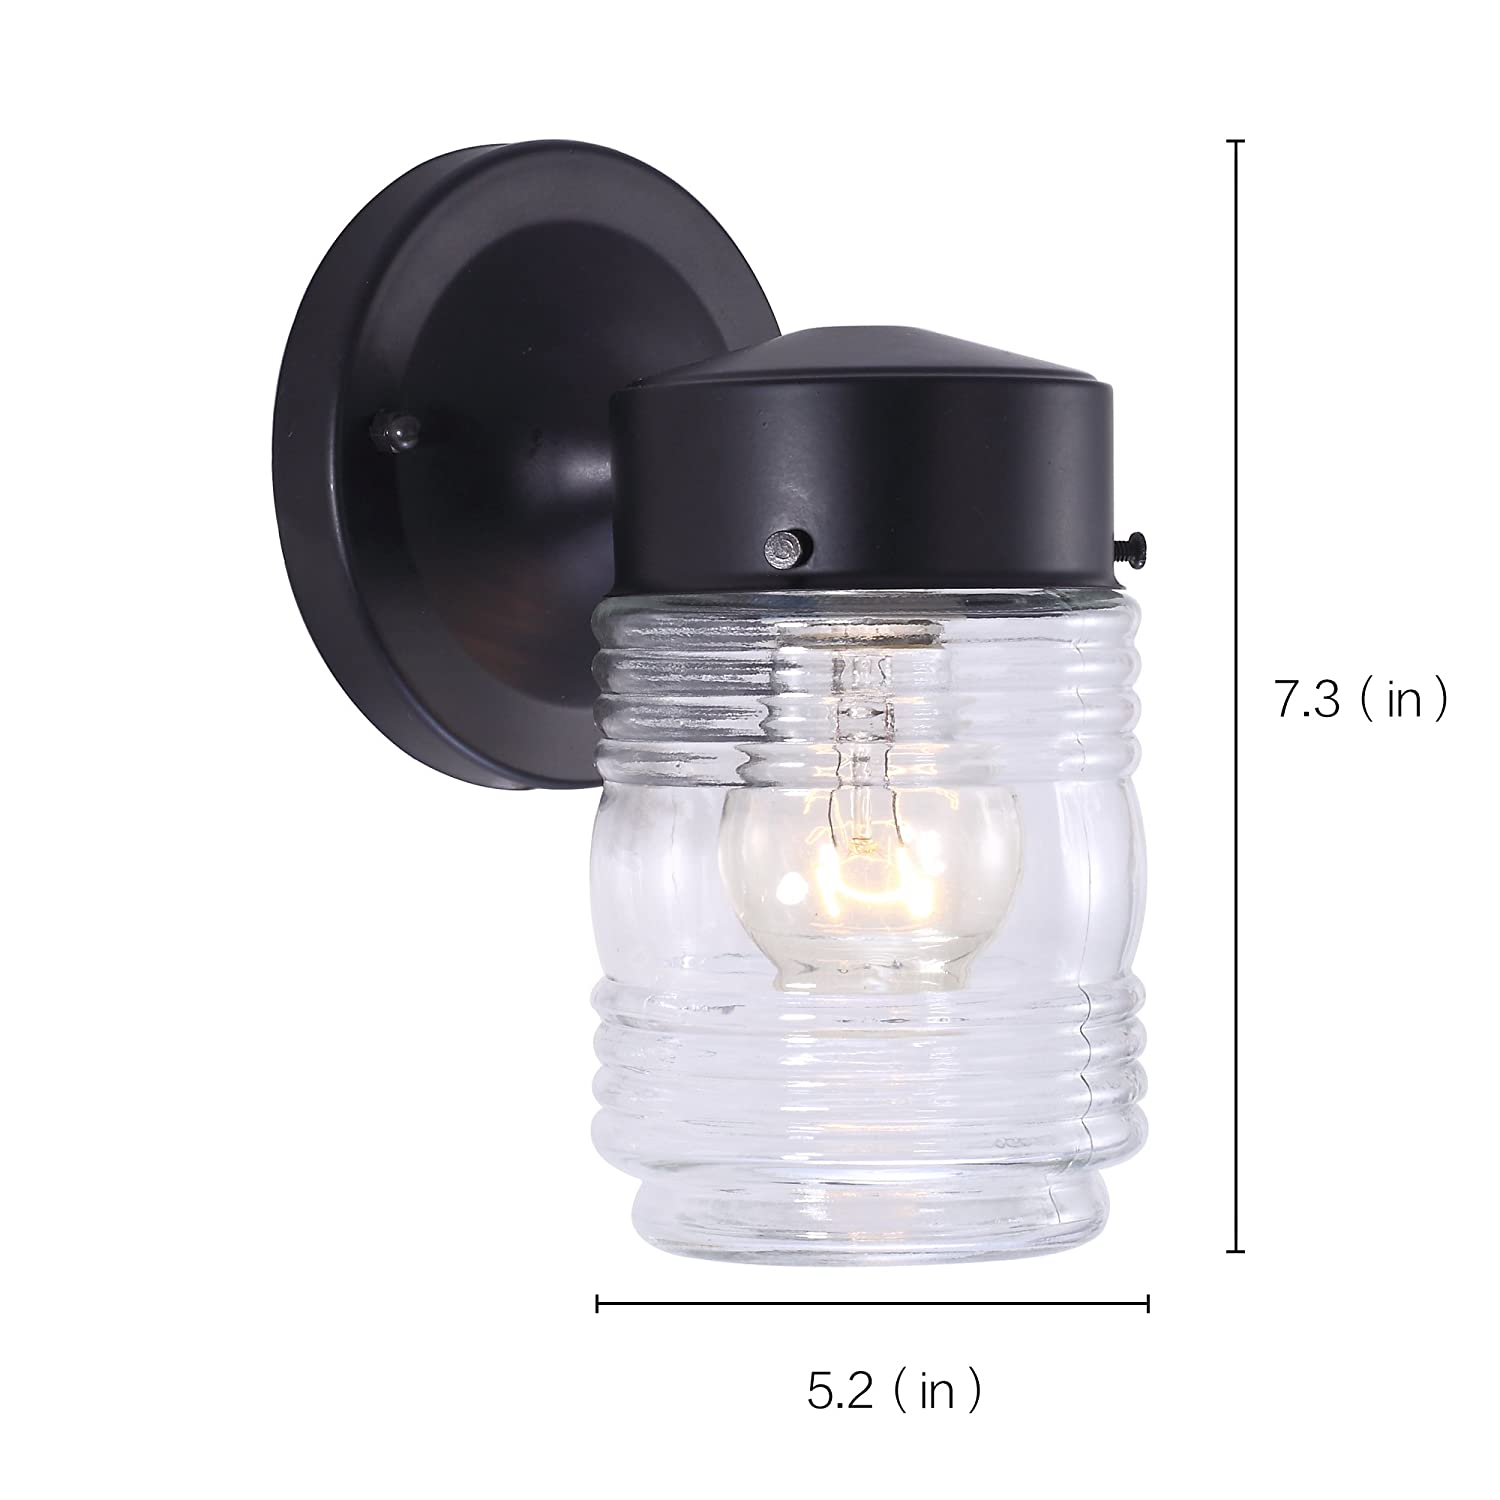 7pandas 00533511 1 light jelly jar wall light sconce fixutre 7pandas 00533511 1 light jelly jar wall light sconce fixutre indoor wall mount light with white glass shade black 5 inch amazon arubaitofo Images